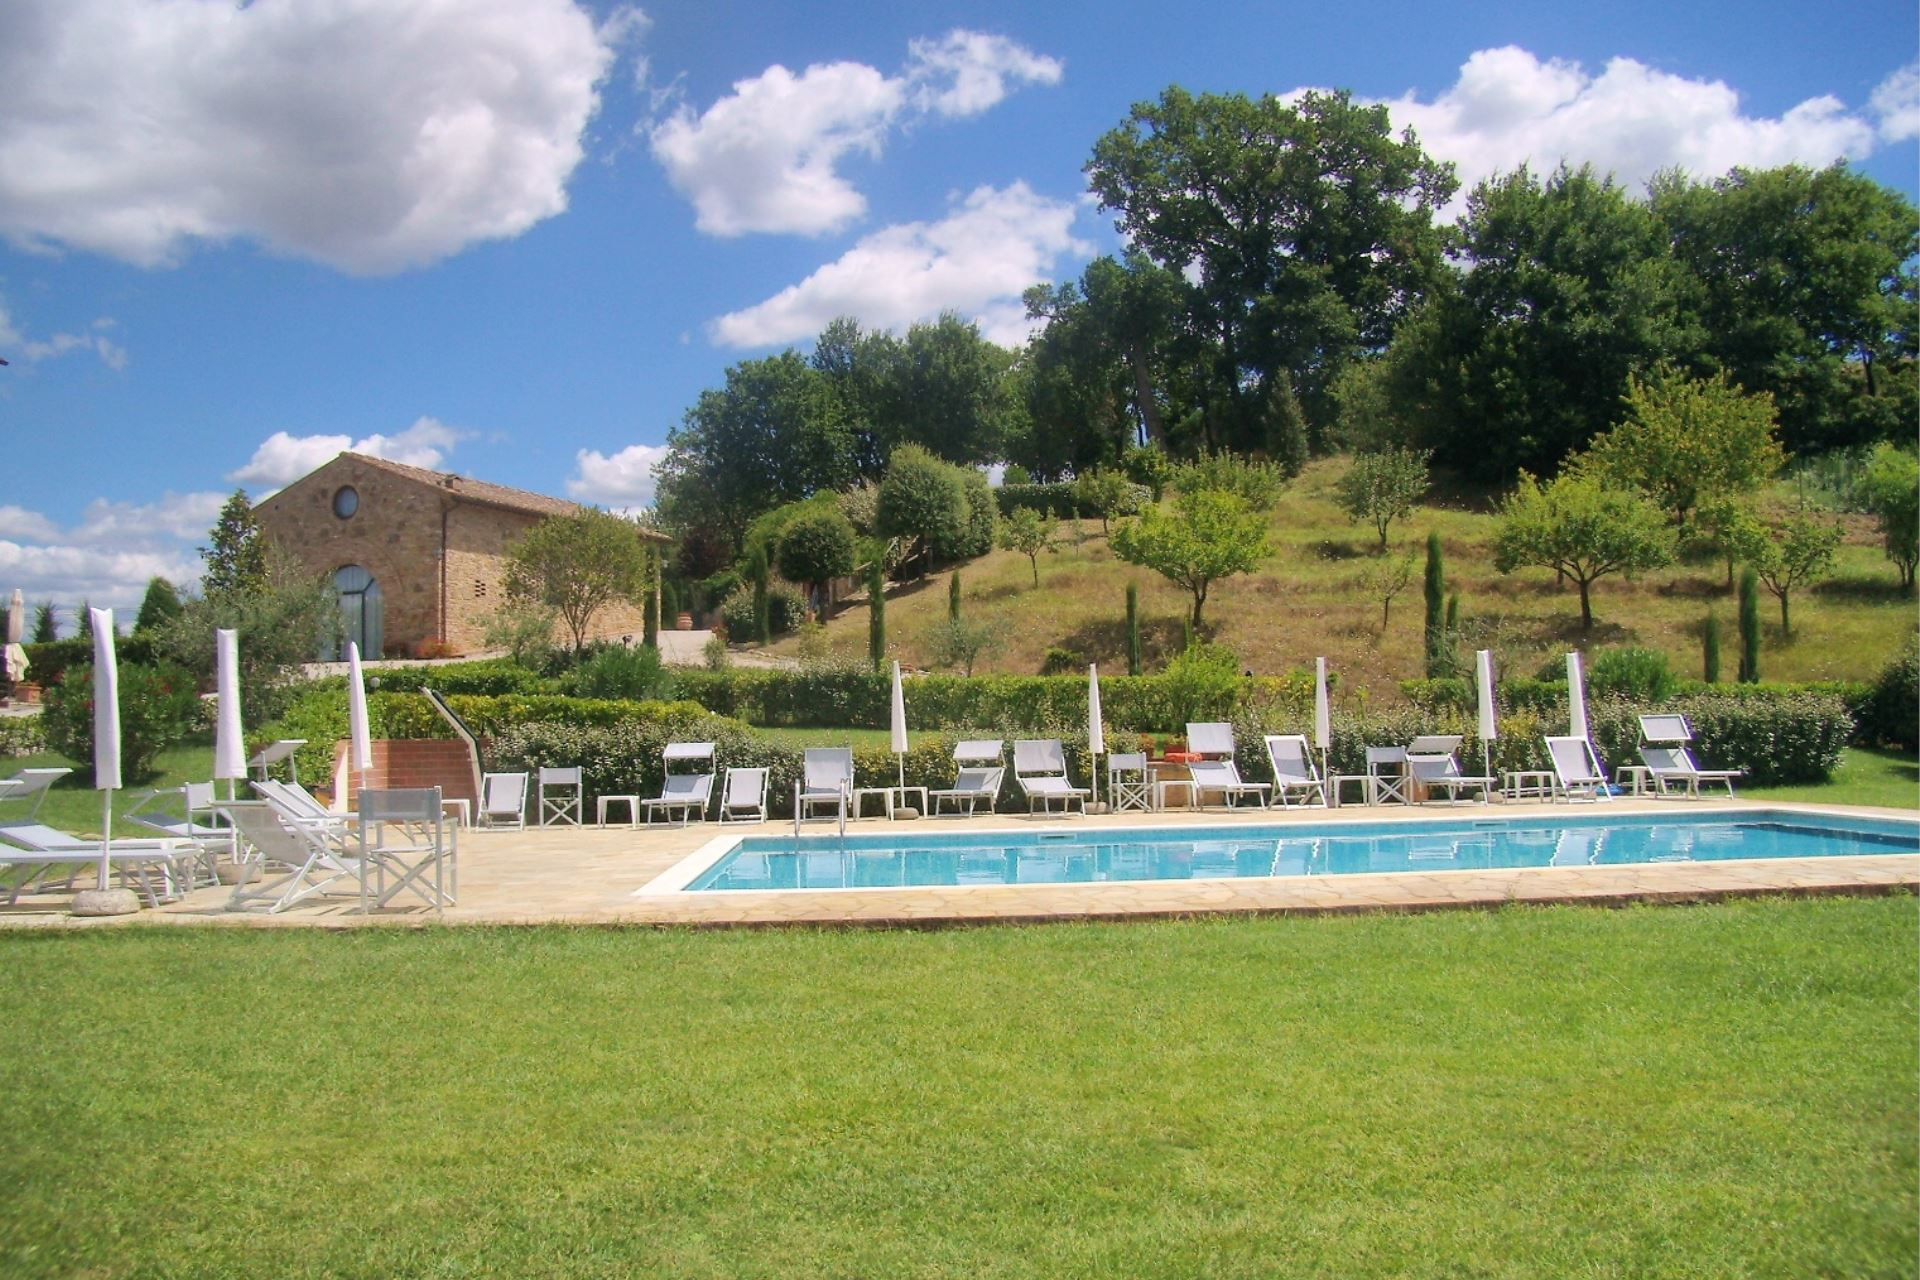 APPARTEMENTS AVEC PISCINE DECAMERONE GAMBASSI TERME TOSCANA